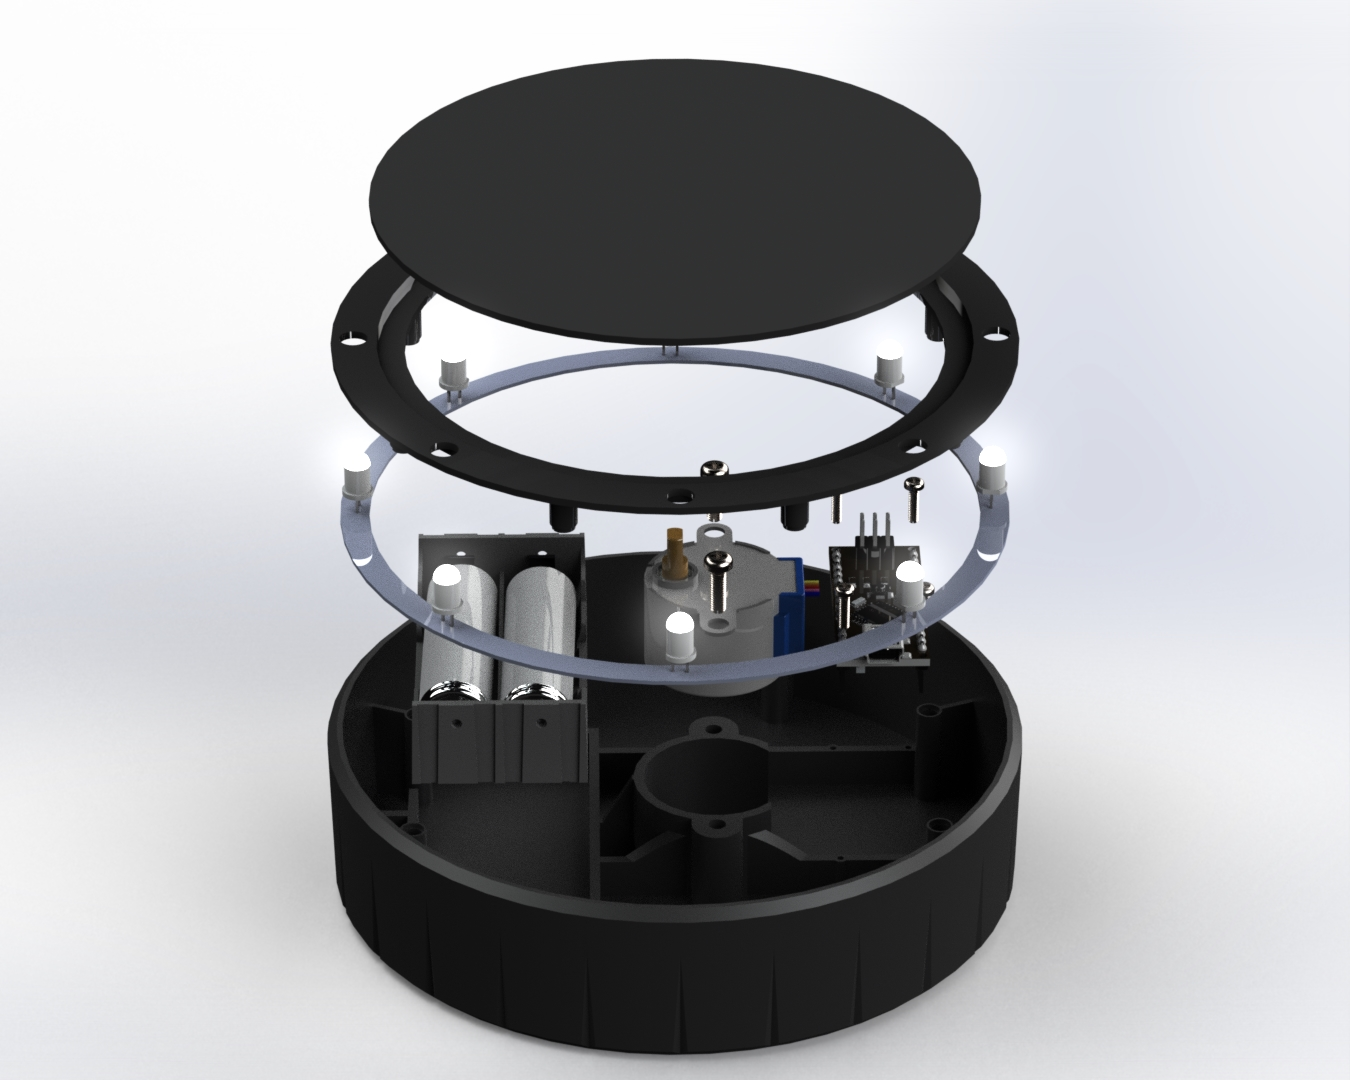 rotating-arduino-nano-product-display-table-exploded-view-computer-rendering